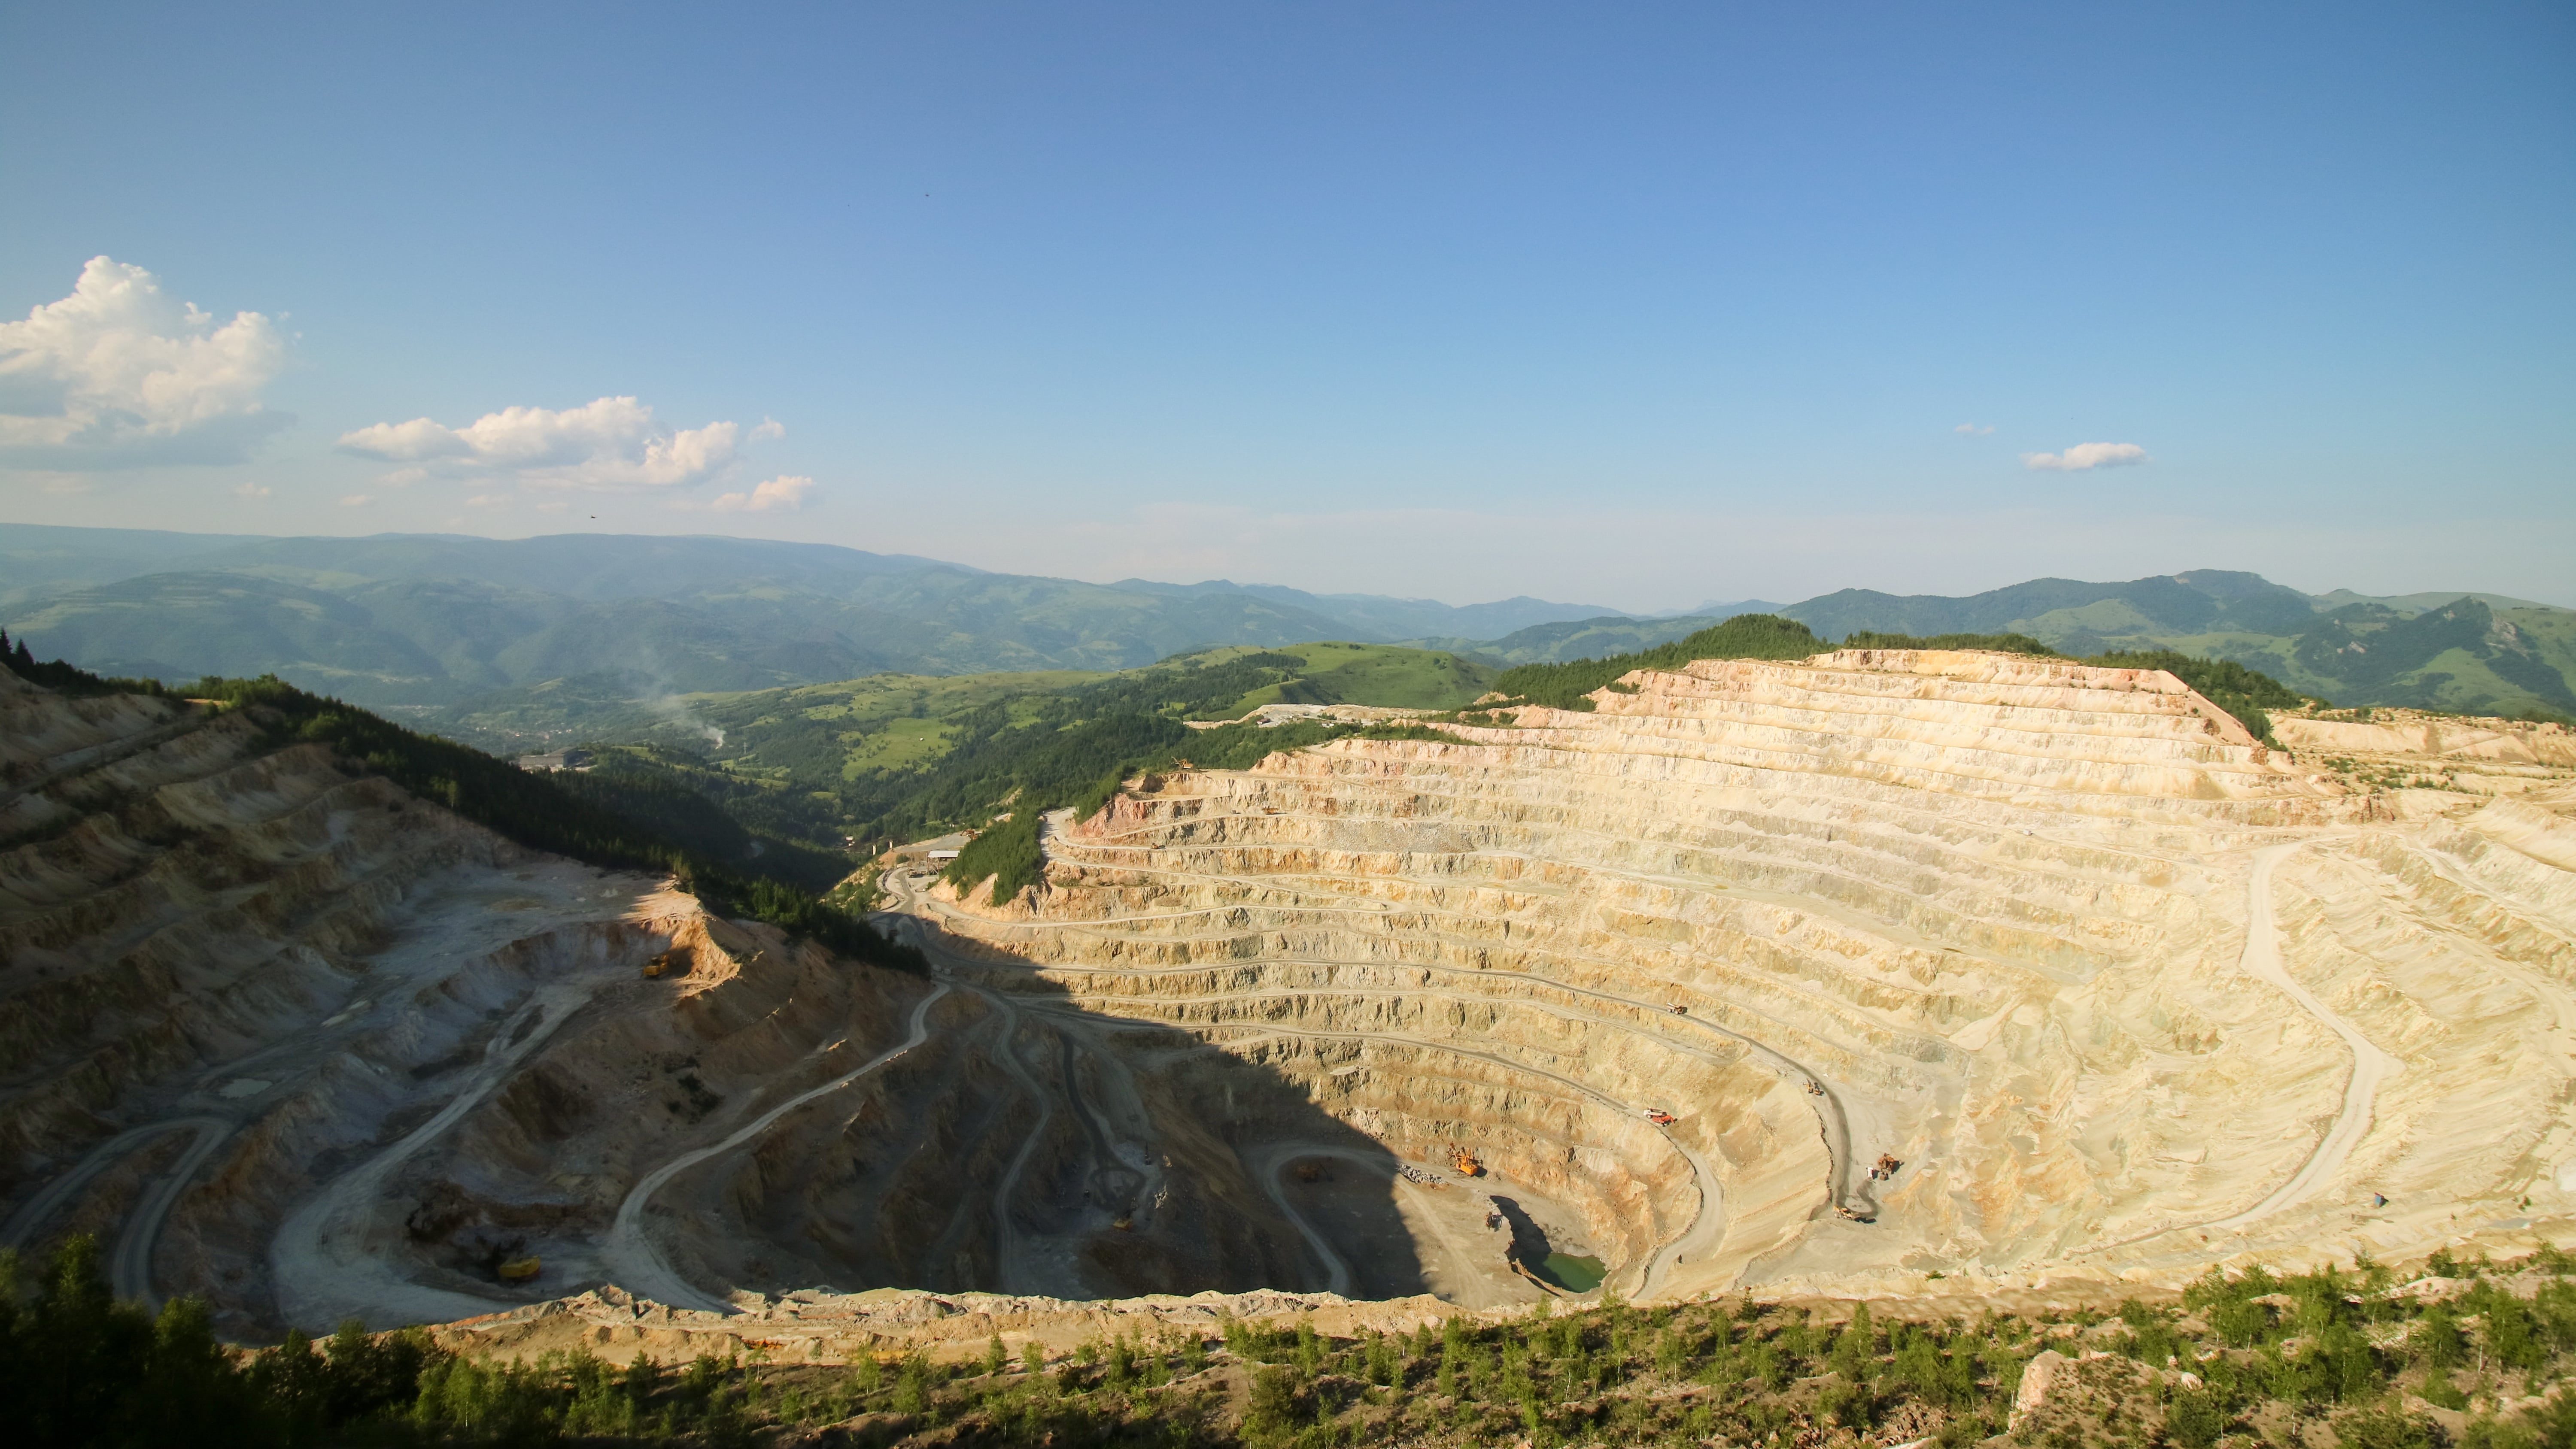 ROMANIA'S MOST STUNNING MINES